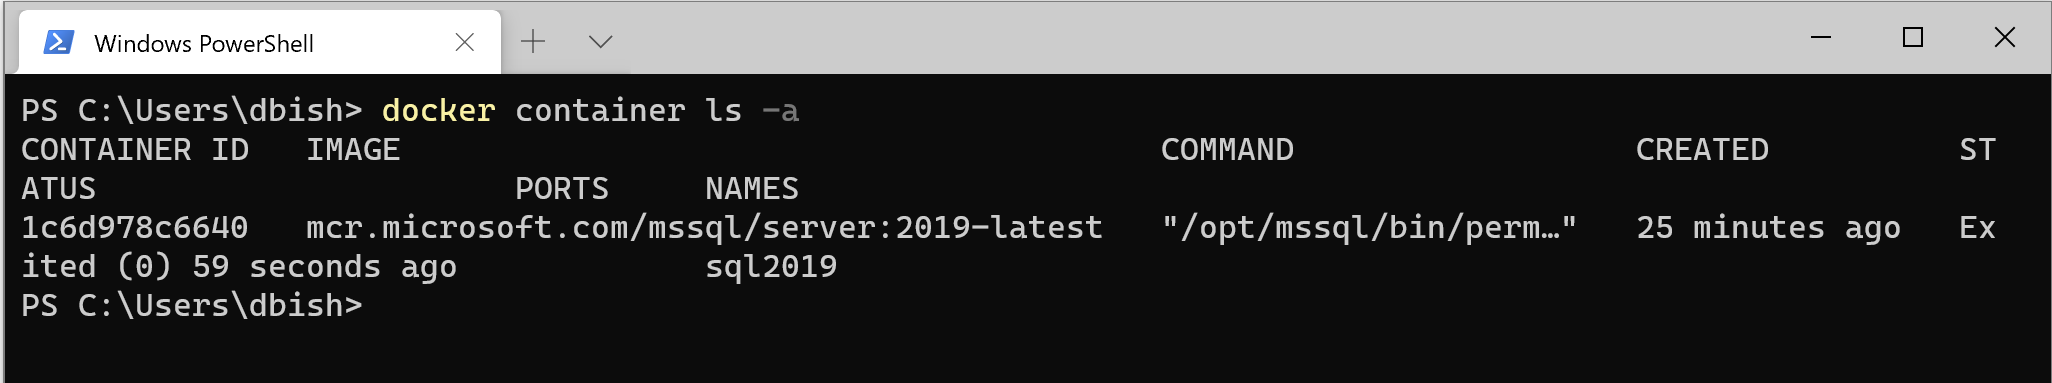 Docker container stop command